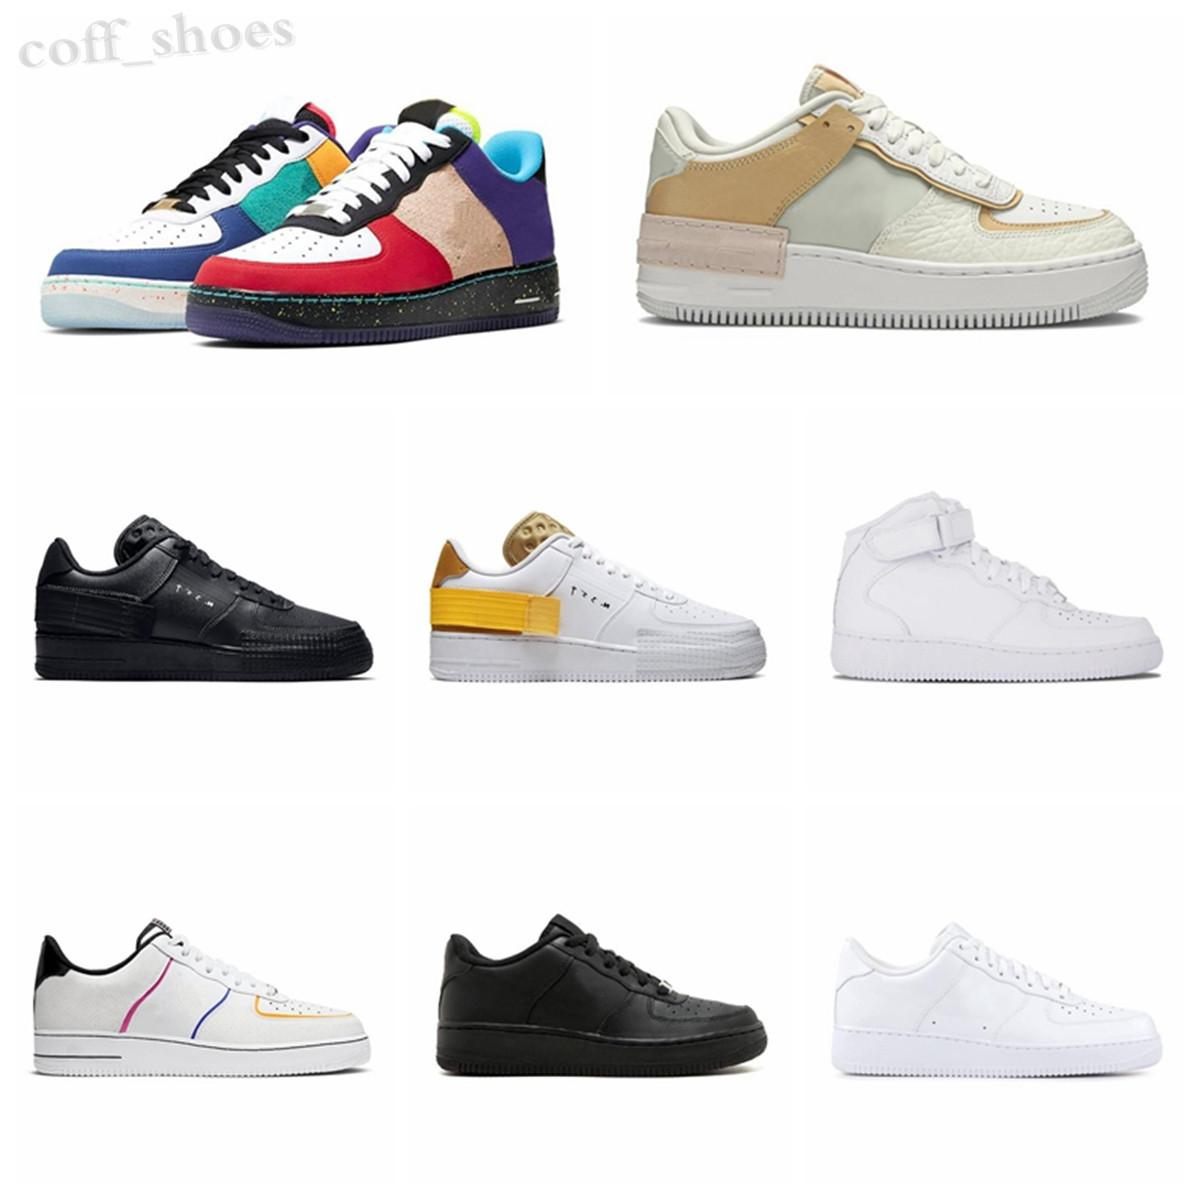 Force one 1 AF1 2020 Low Cut One 1 Child Skateboard Chaussures de sport originales Forcd 1 Shade Caoutchouc Pad Construit_in Zoom Panier Macaron Chaussure Taille KN06